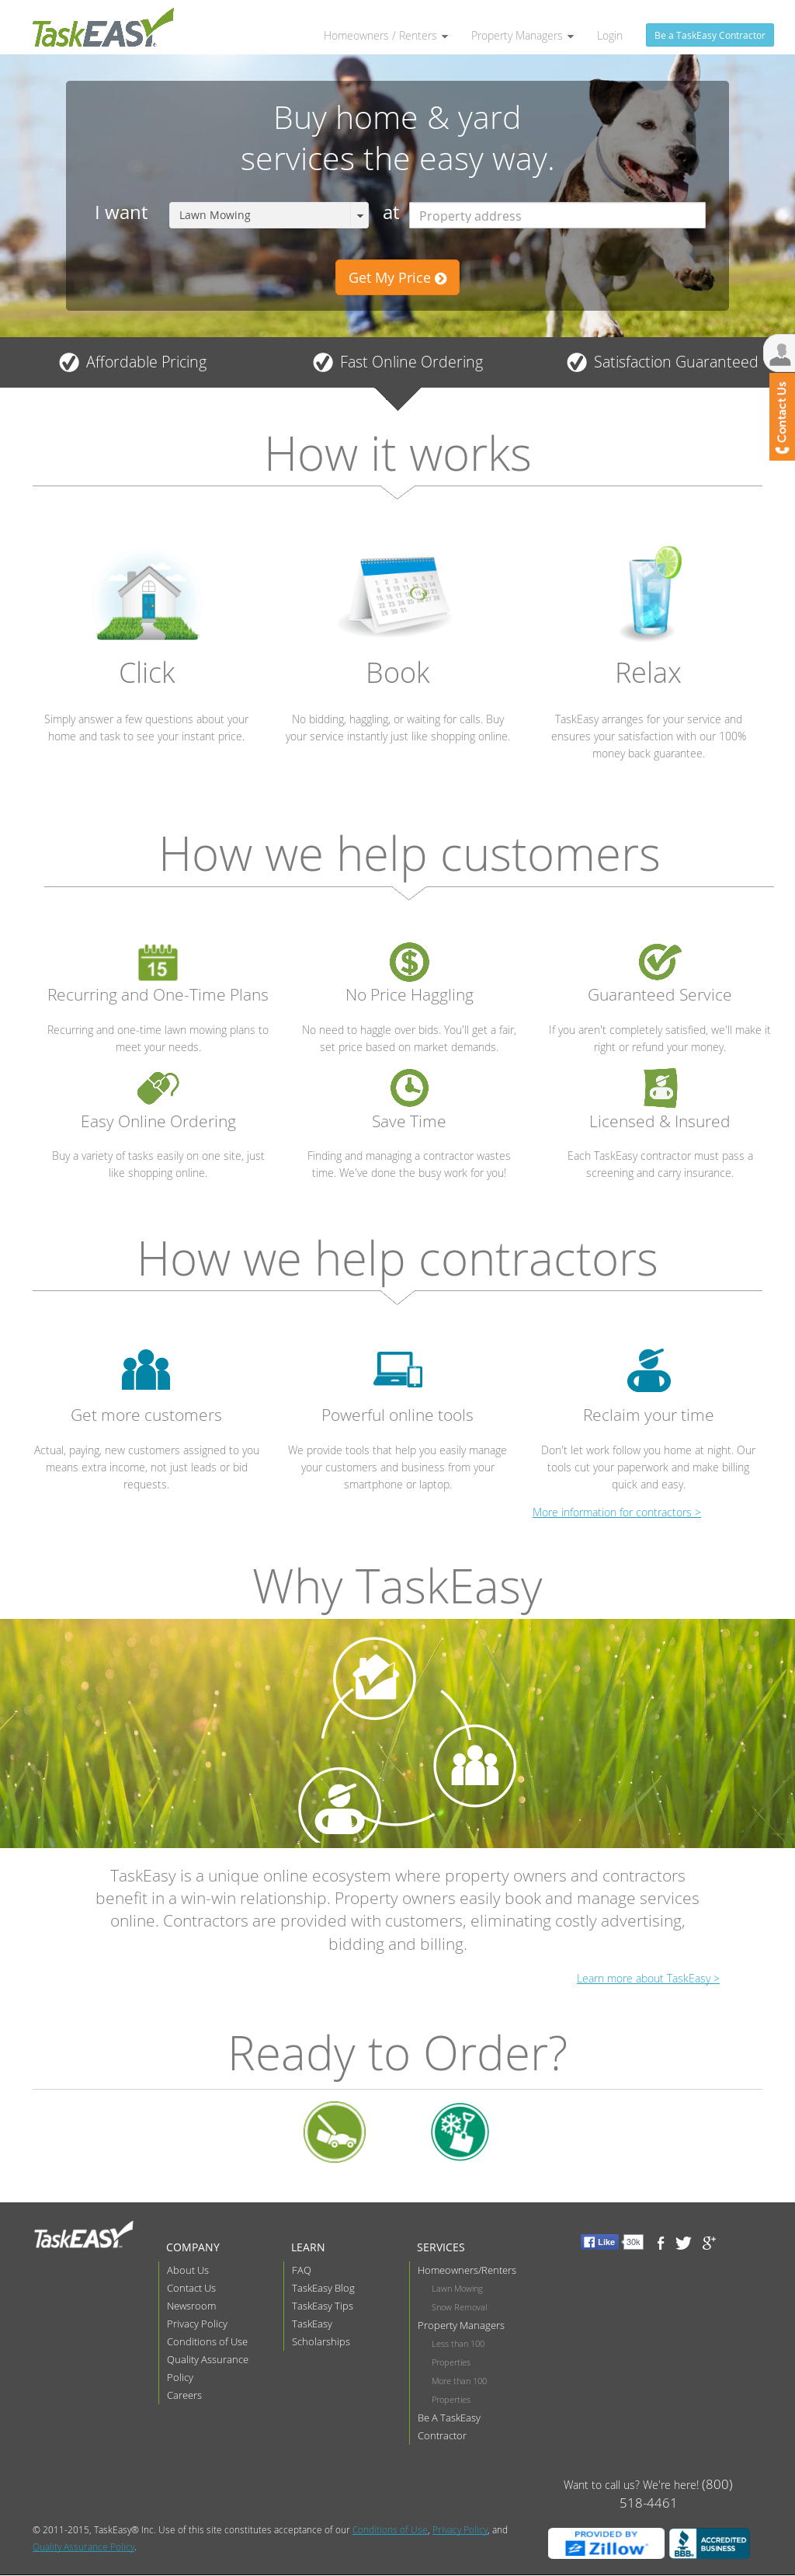 TaskEasy Competitors, Revenue and Employees - Owler Company